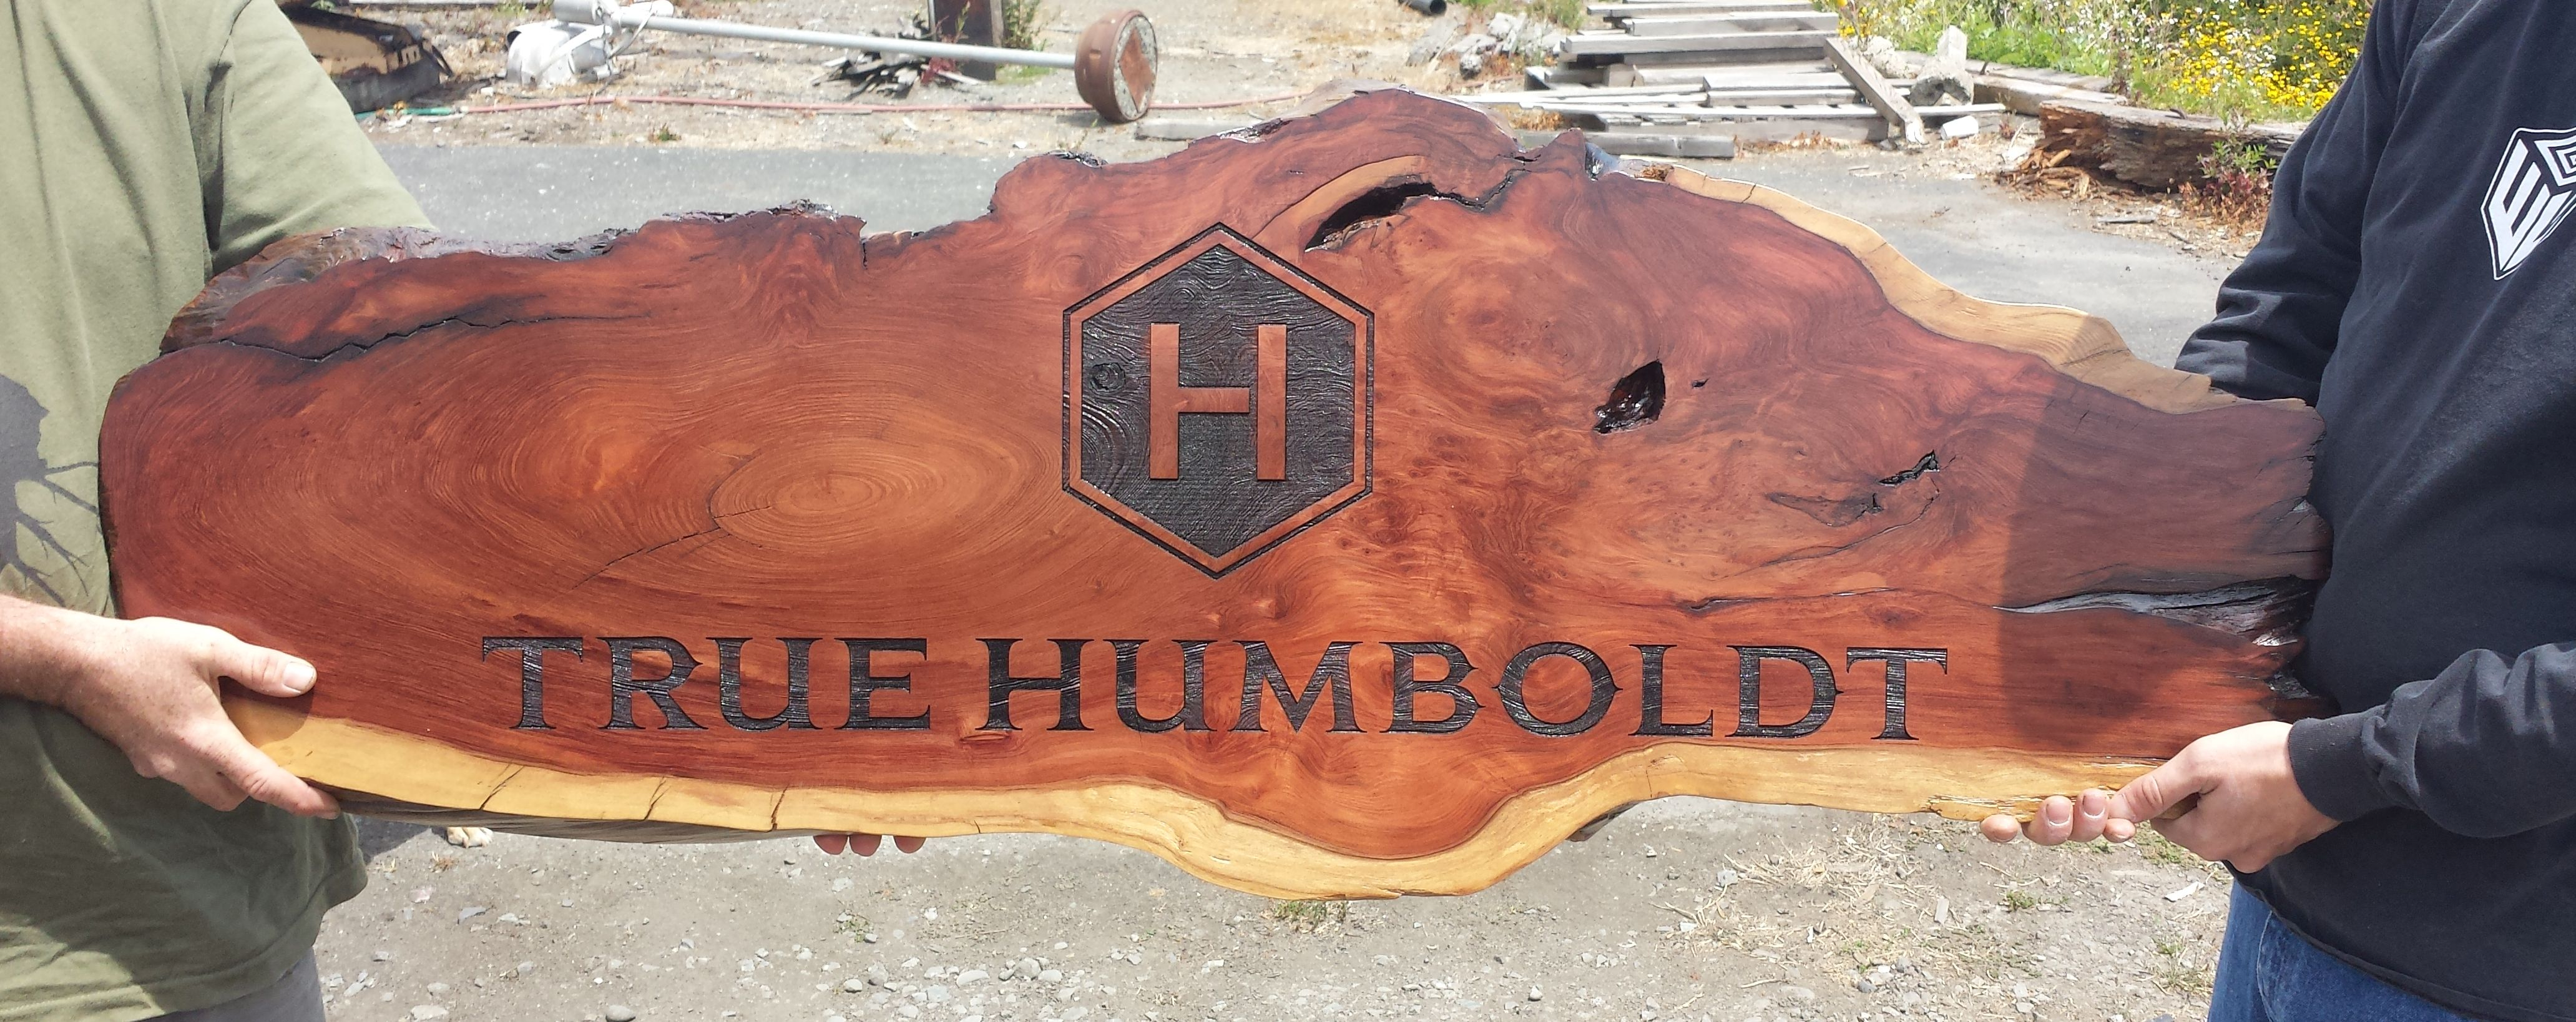 WoodLab Designs True Humboldt Laser Etched Redwood Slab signage